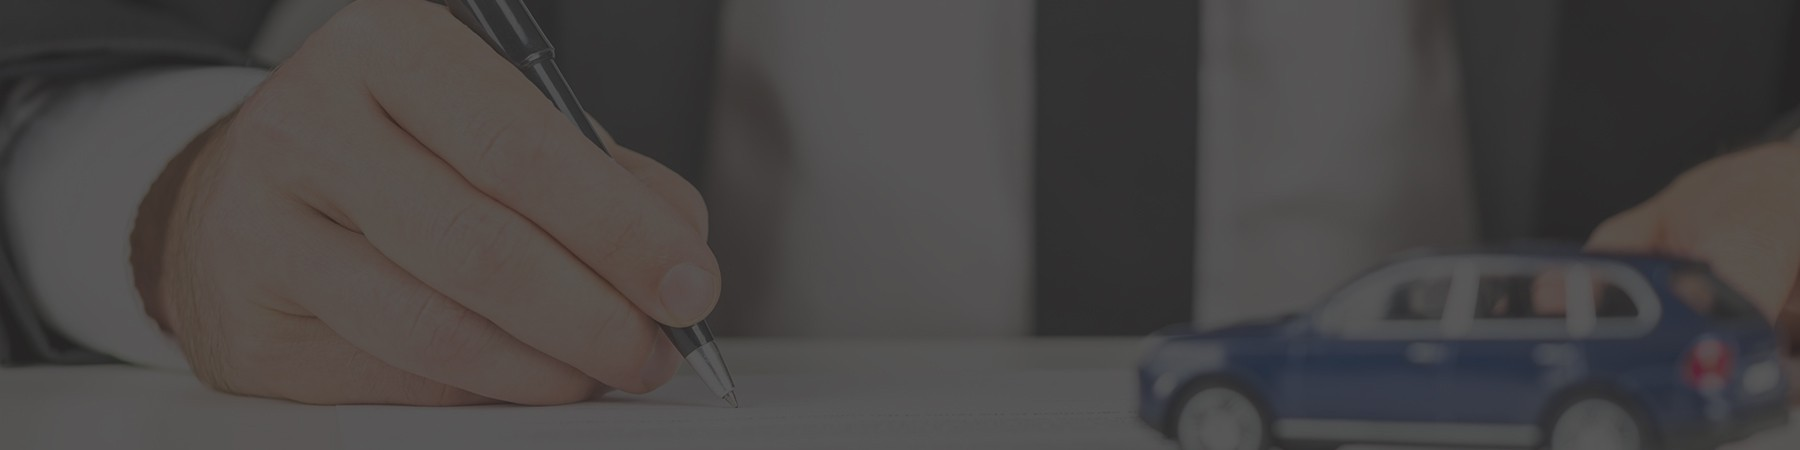 Person writing with a pen